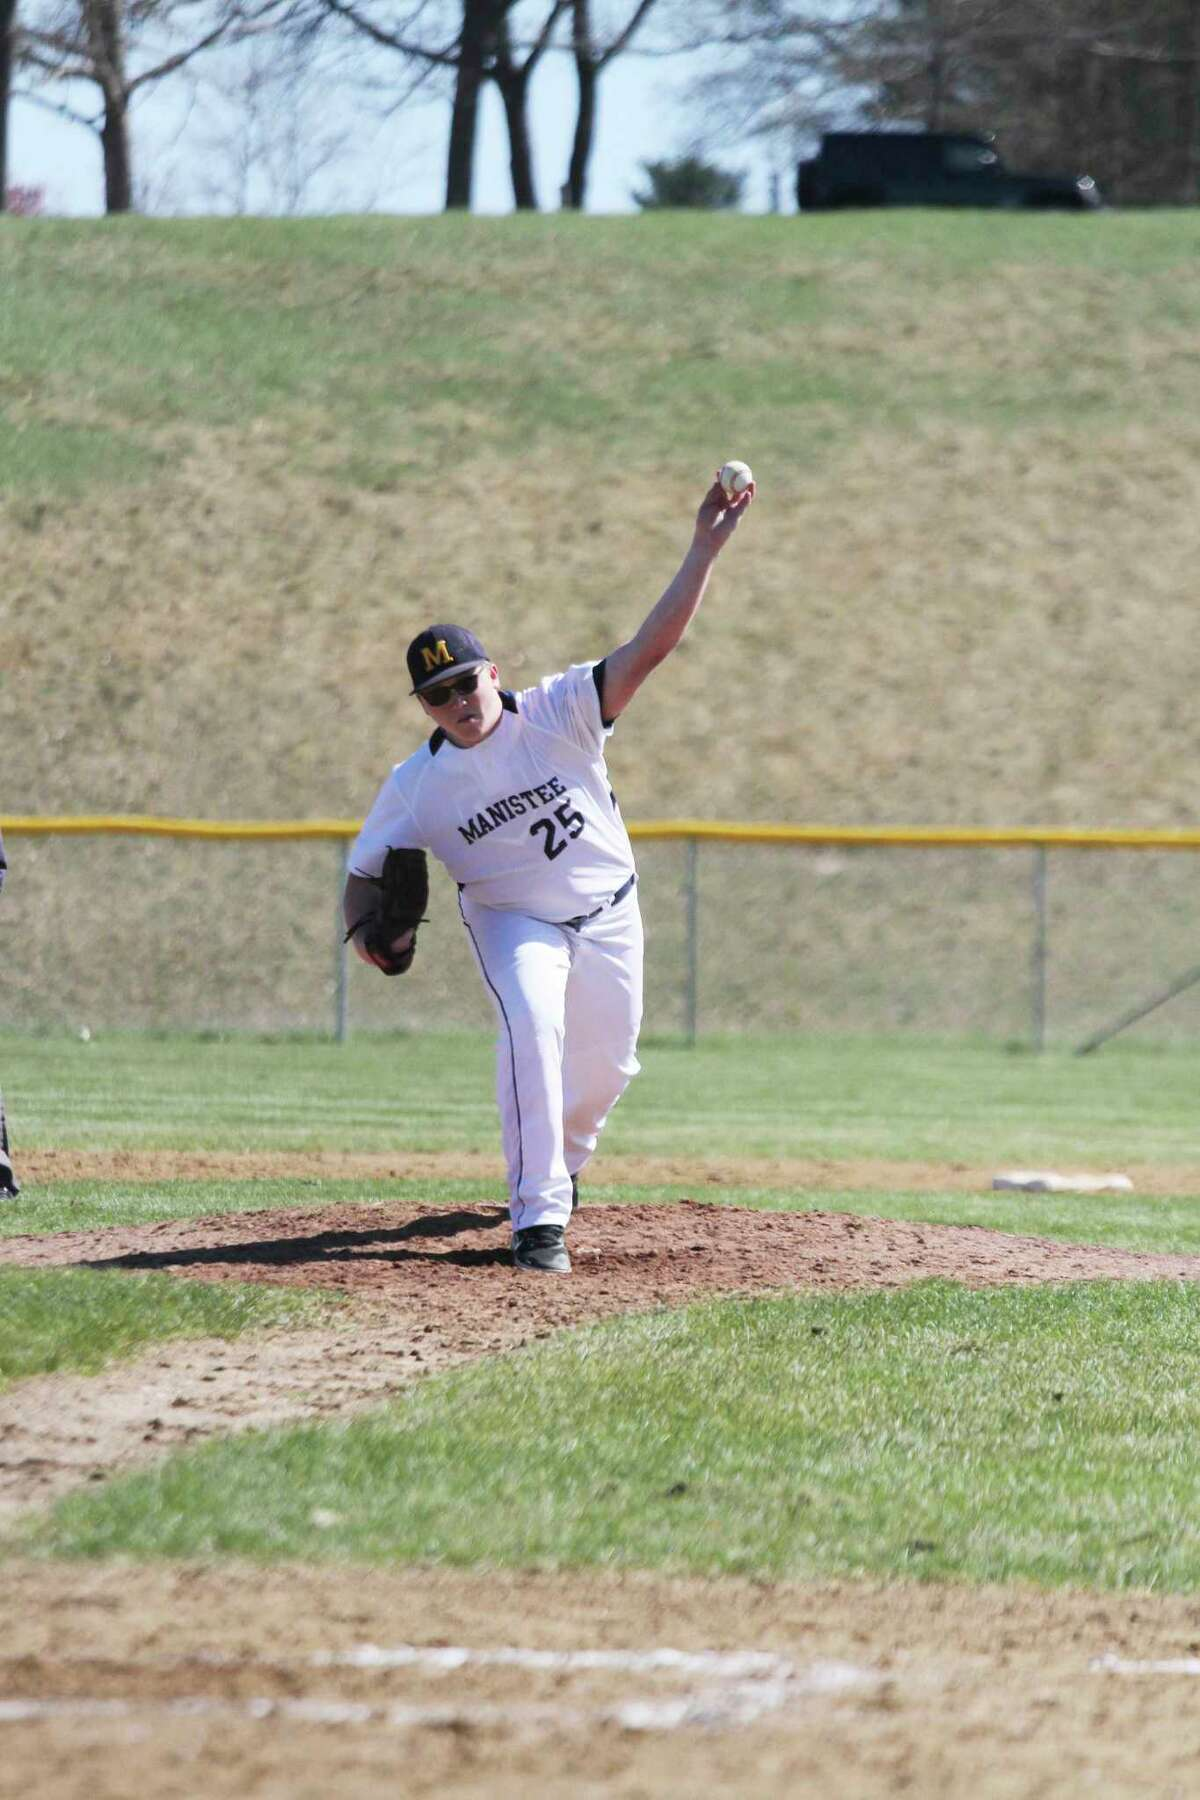 Donavyn Kirchinger and the Manistee Chippewas split with Orchard View on Tuesday. (News Advocate file photo)